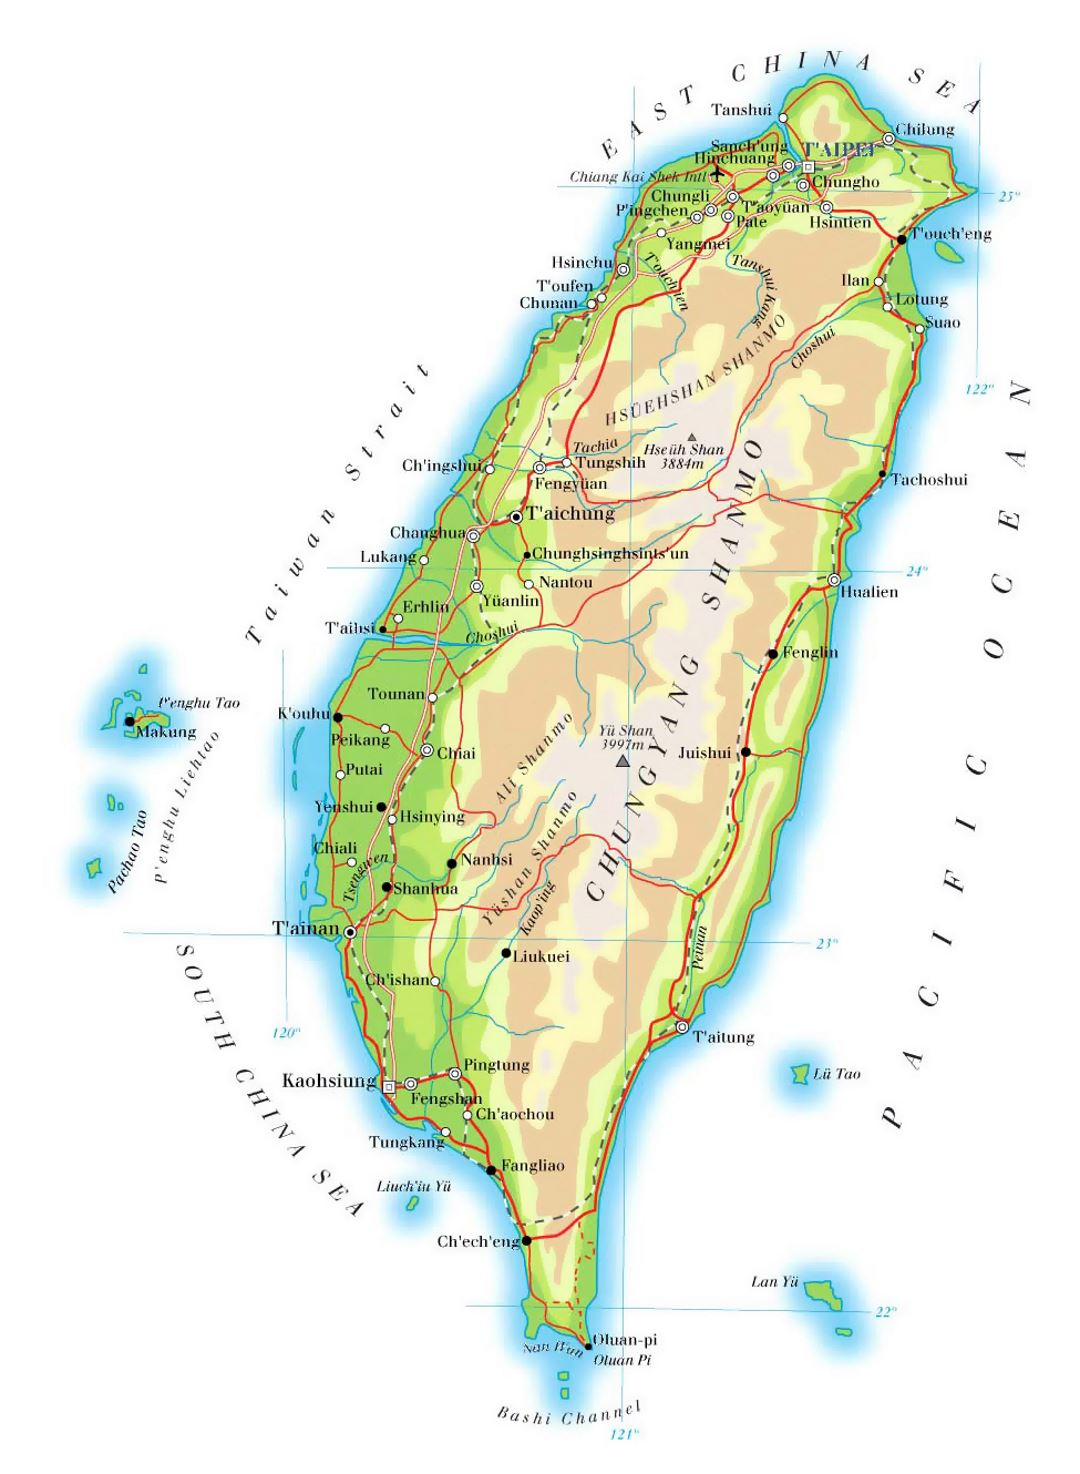 Detailed elevation map of Taiwan with roads, railroads, cities and airports